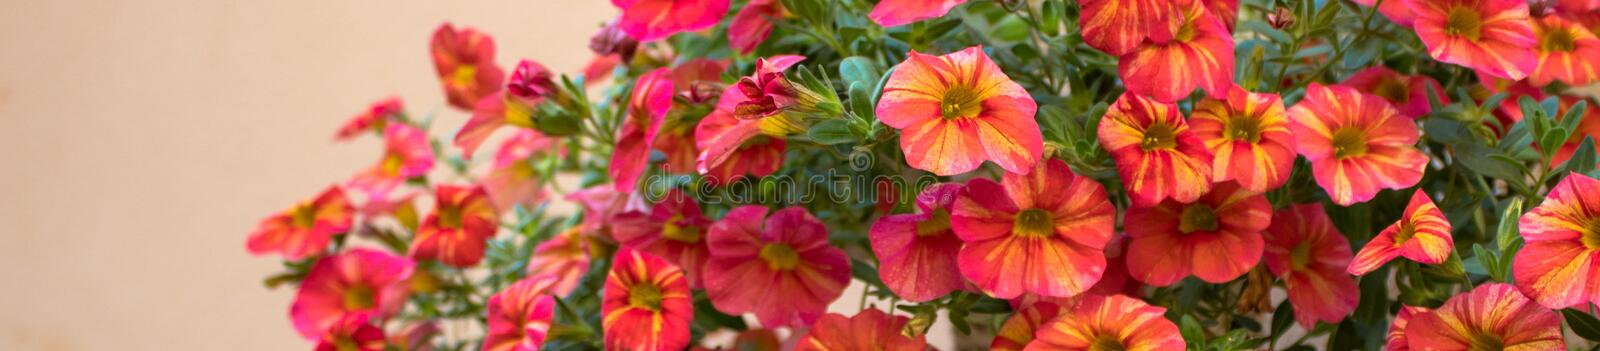 Narrow image of red flowers royalty free stock photography